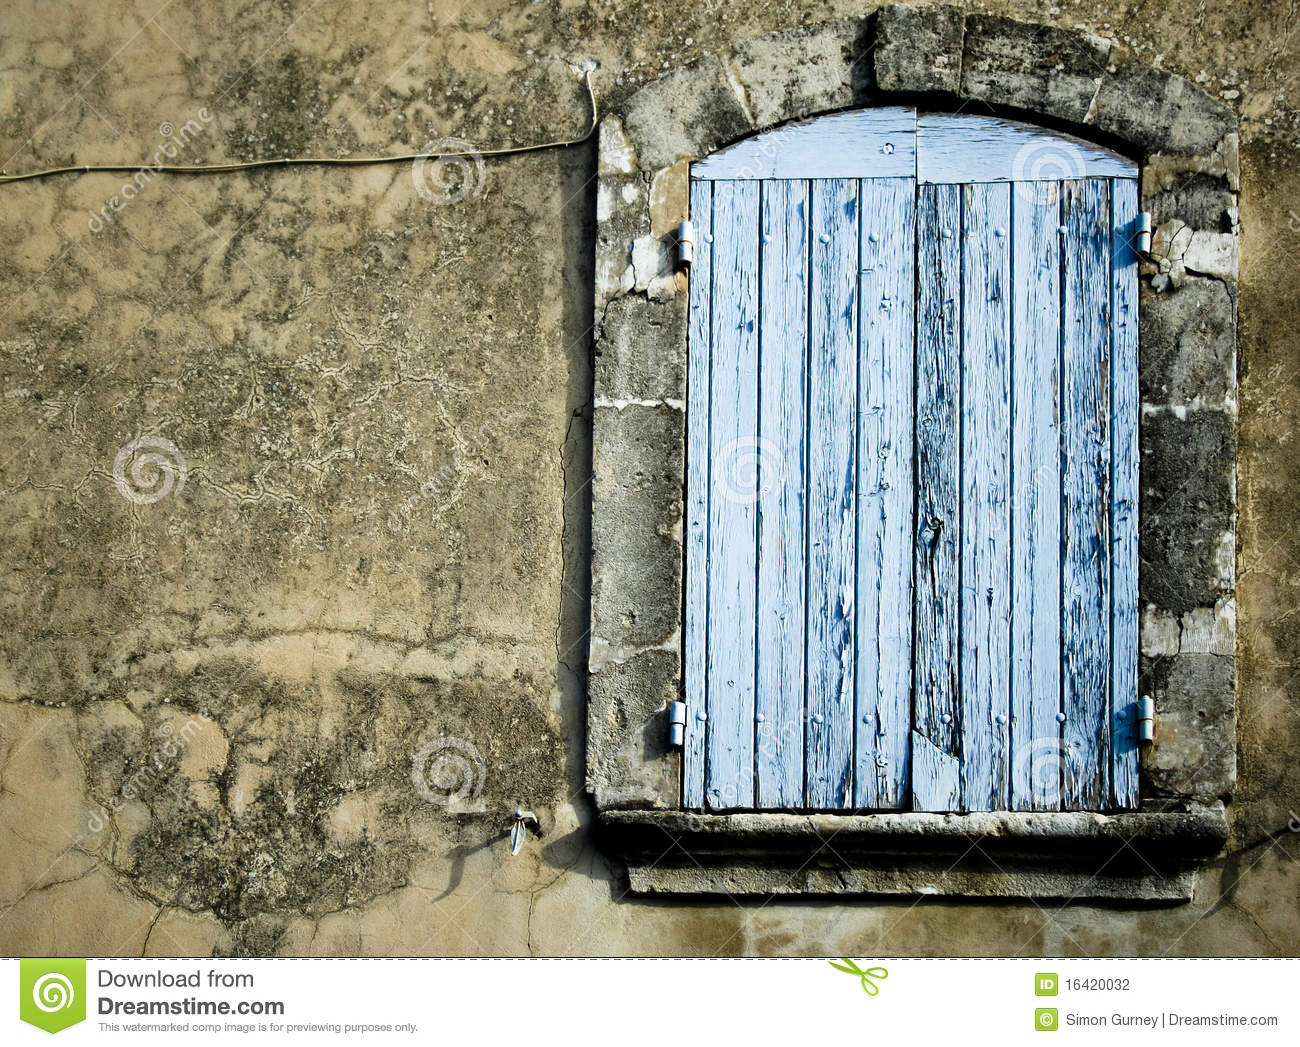 Weathered old blue wooden window on side of house in provence france.